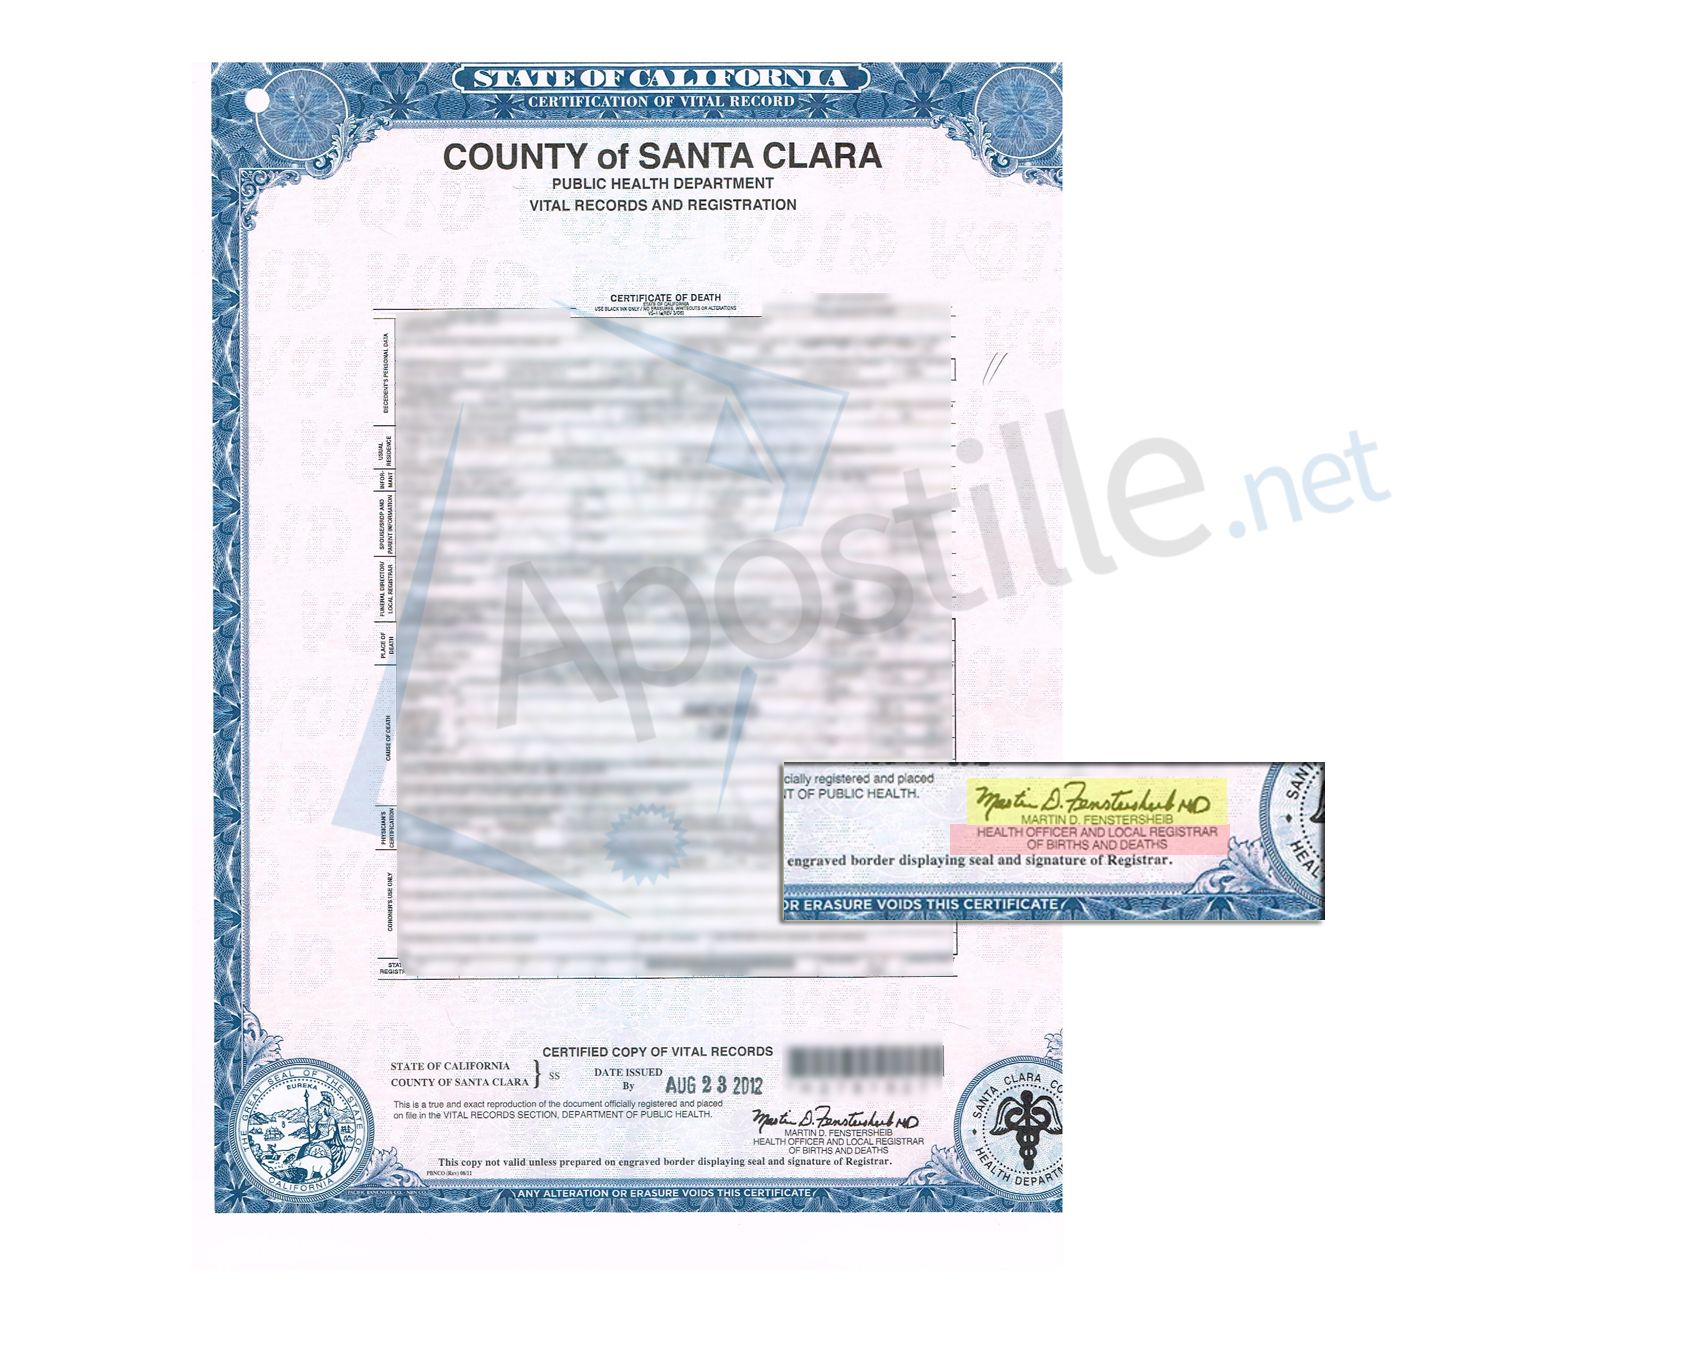 County of santa clara confidential license and certificate of county of santa clara confidential license and certificate of marriage signed by regina alcomendras state of california sample apostille pinterest 1betcityfo Choice Image